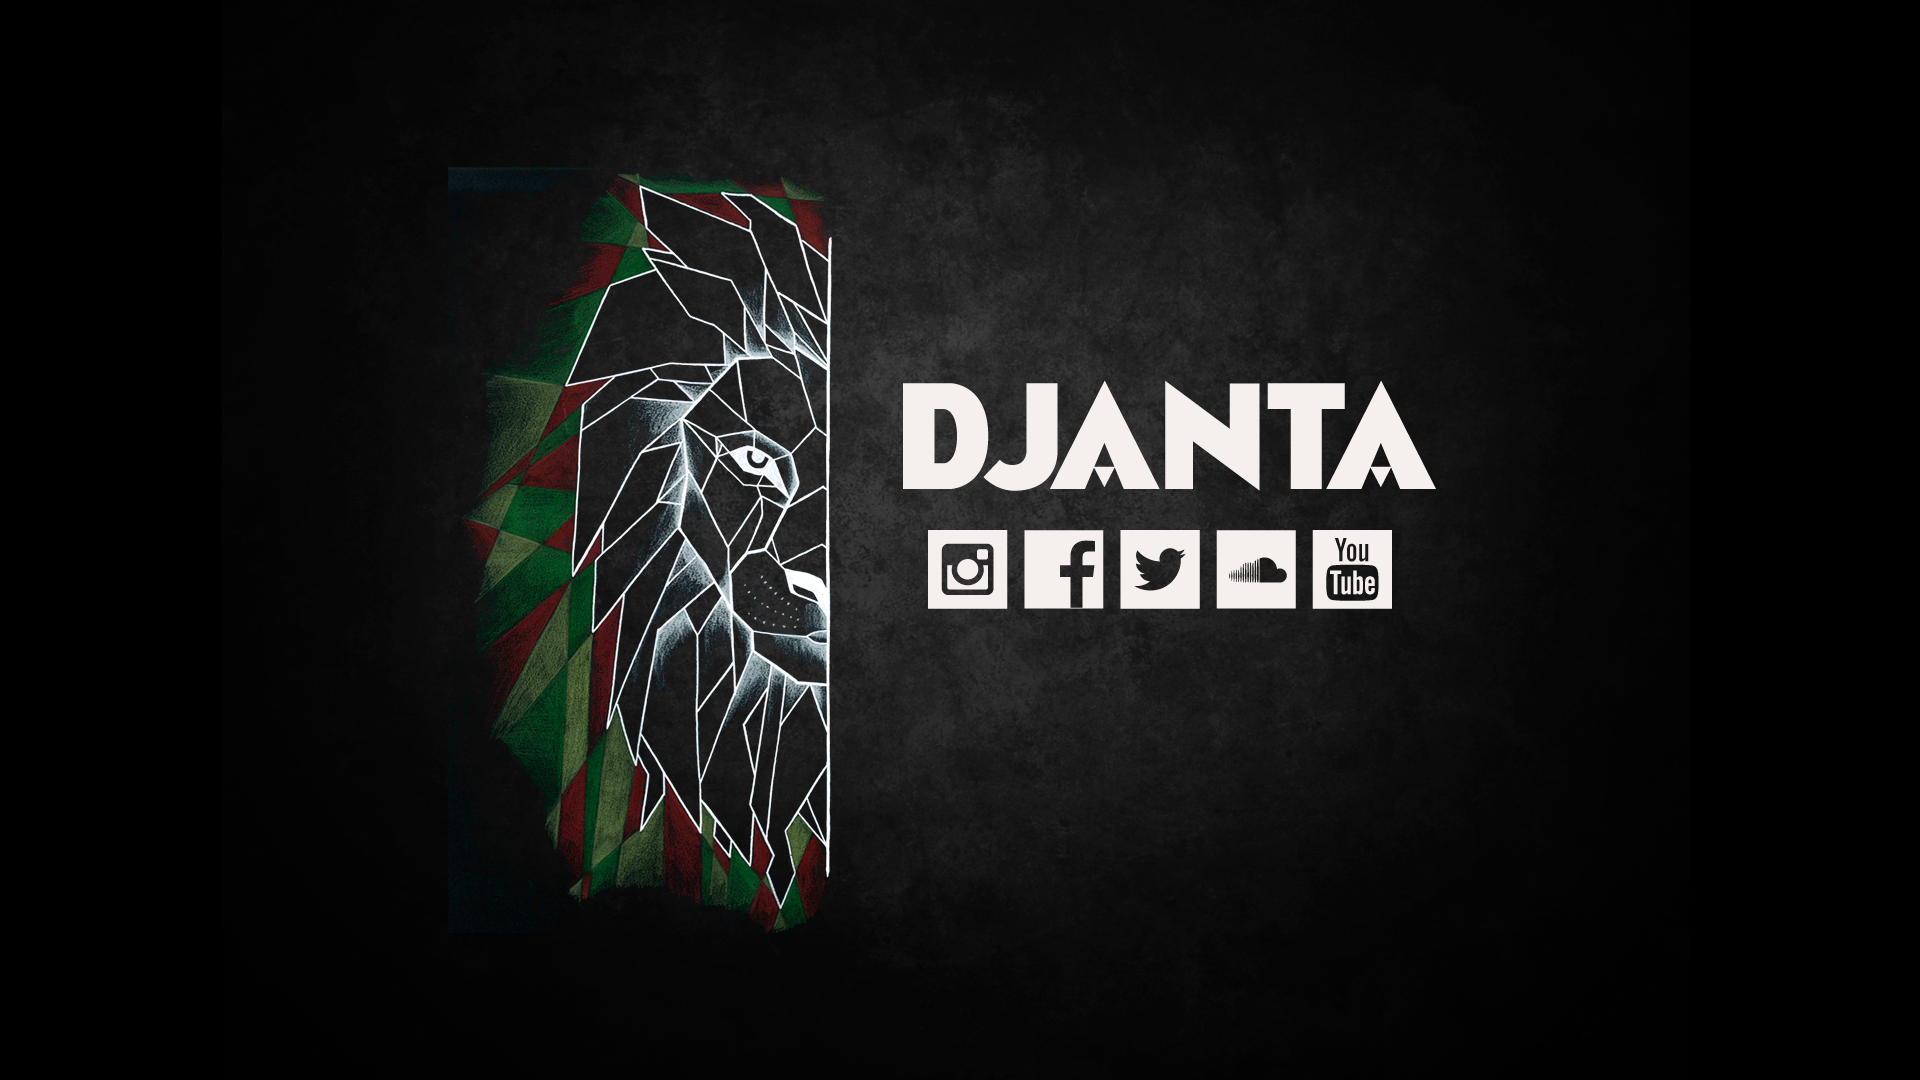 Djanta Conscious Entertainer Video Visual